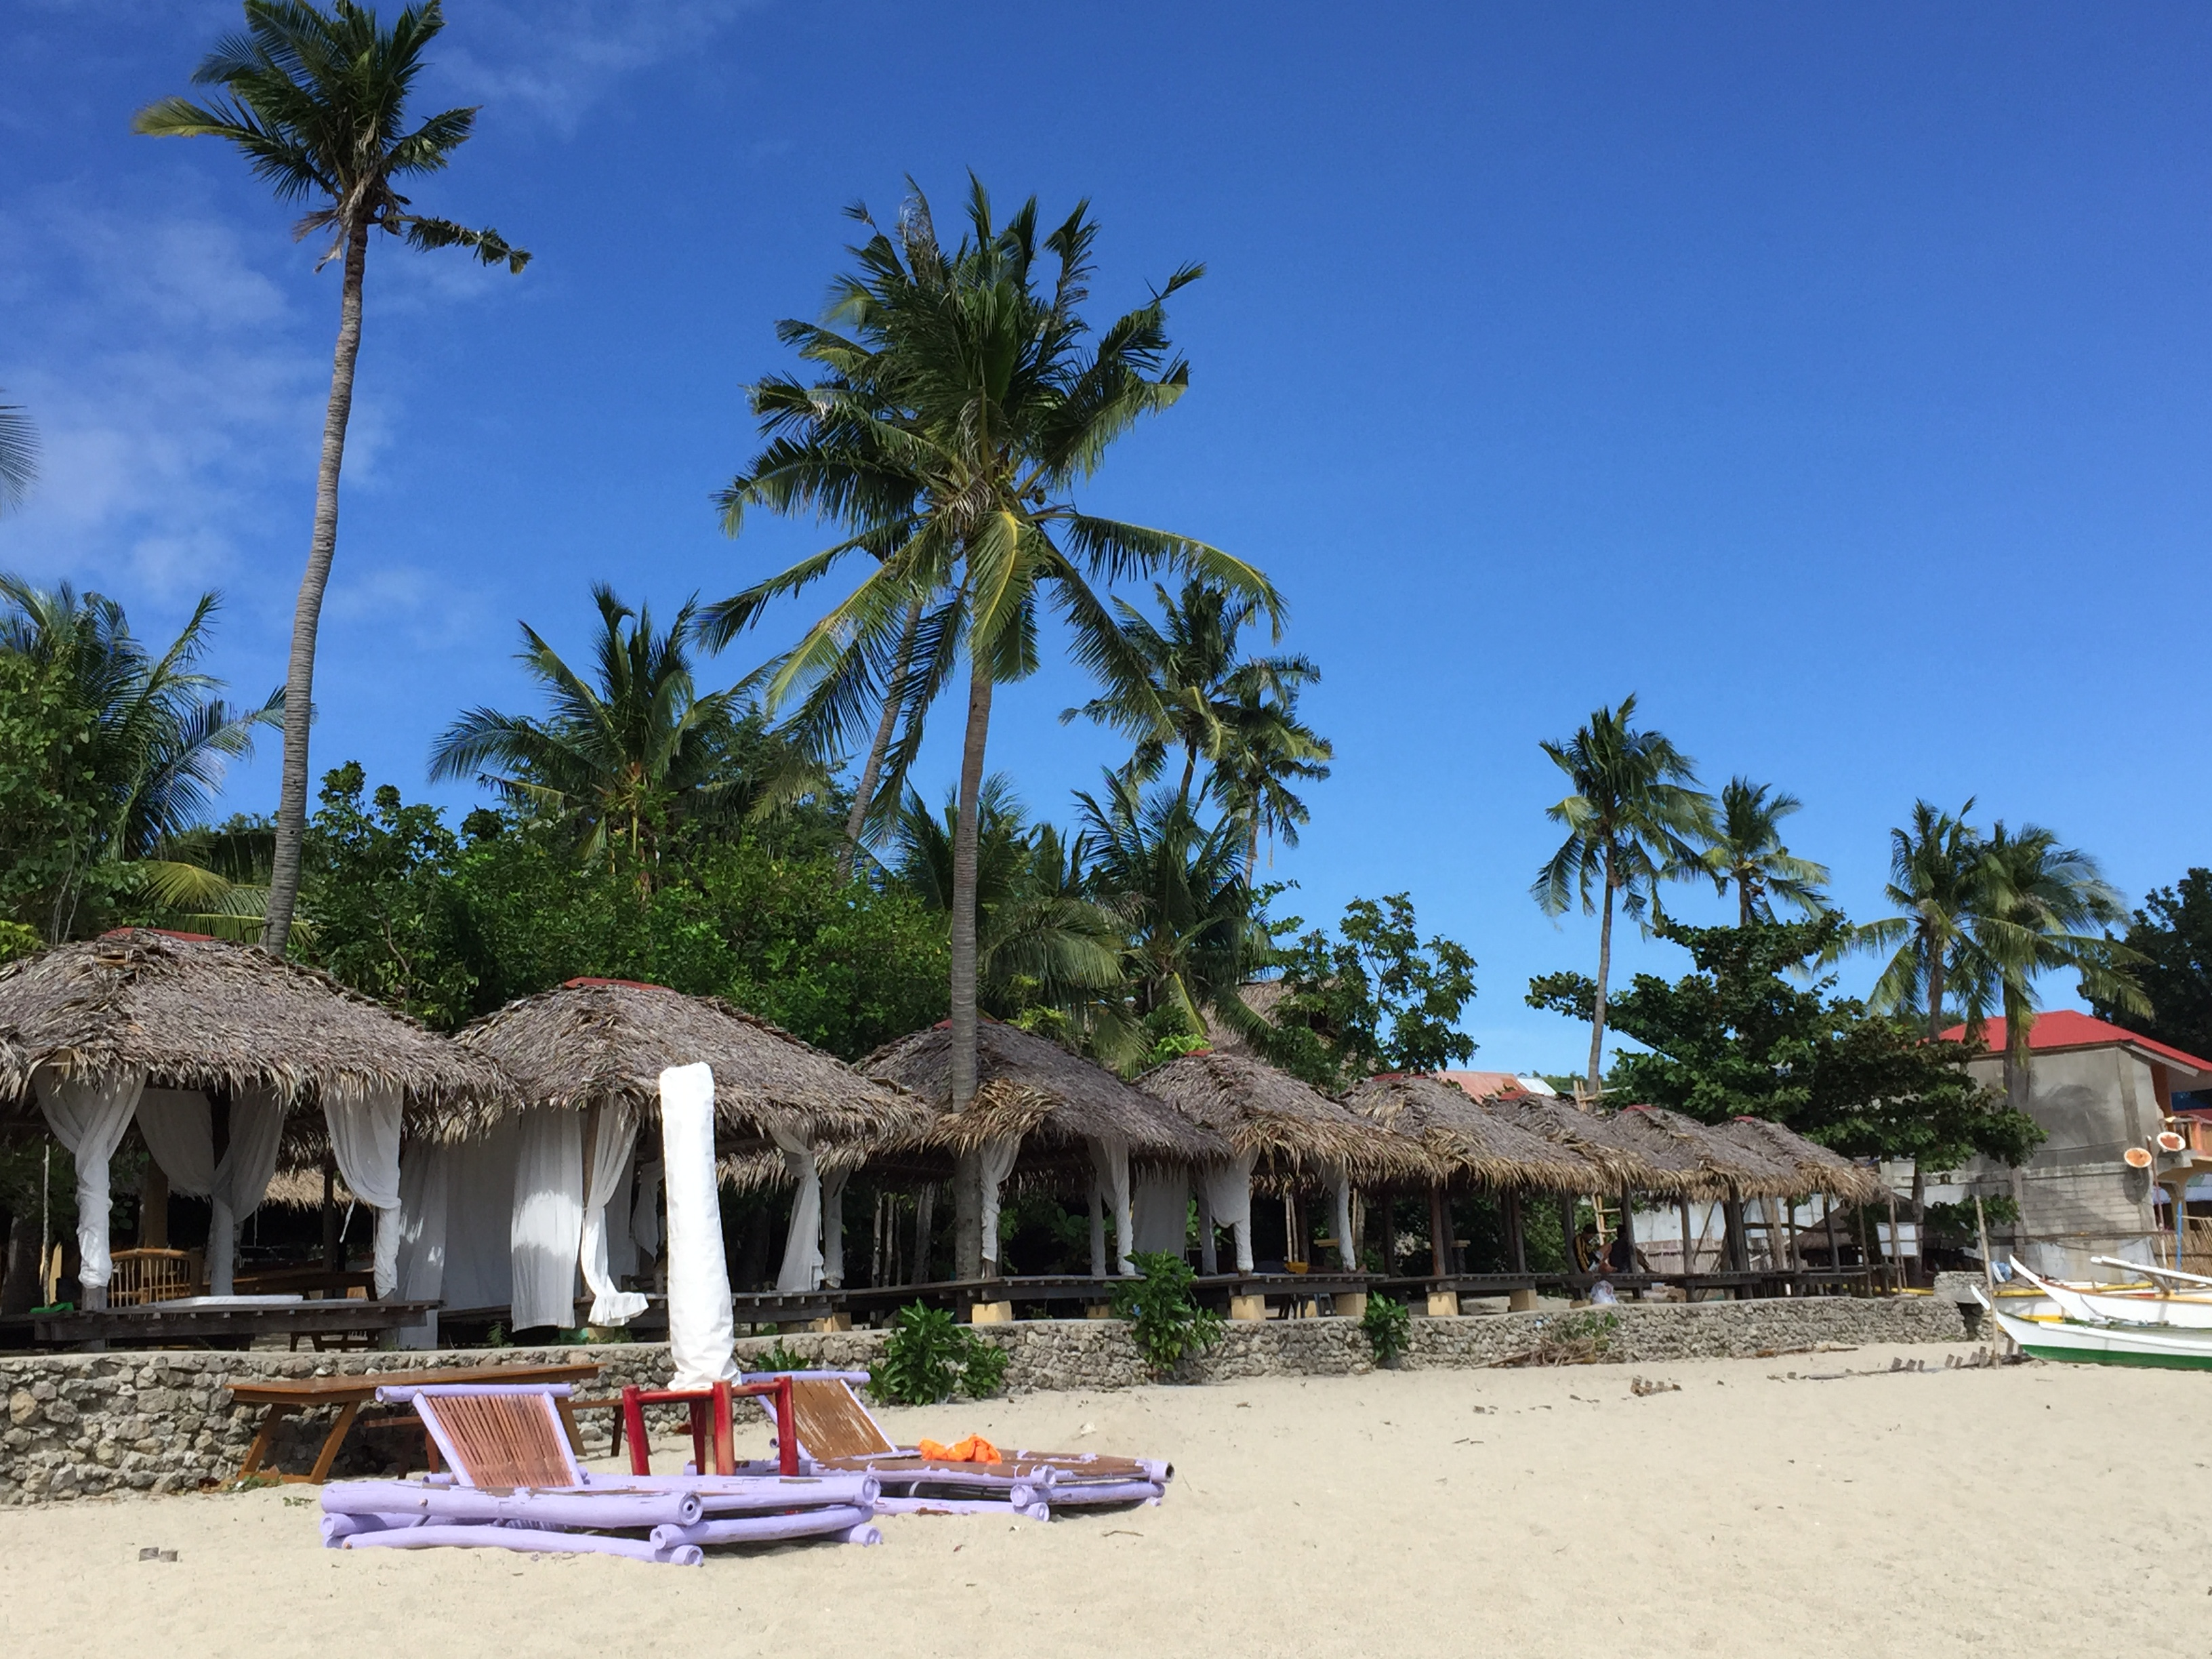 La Luz Beach Resort is more towards the southern end of Laiya